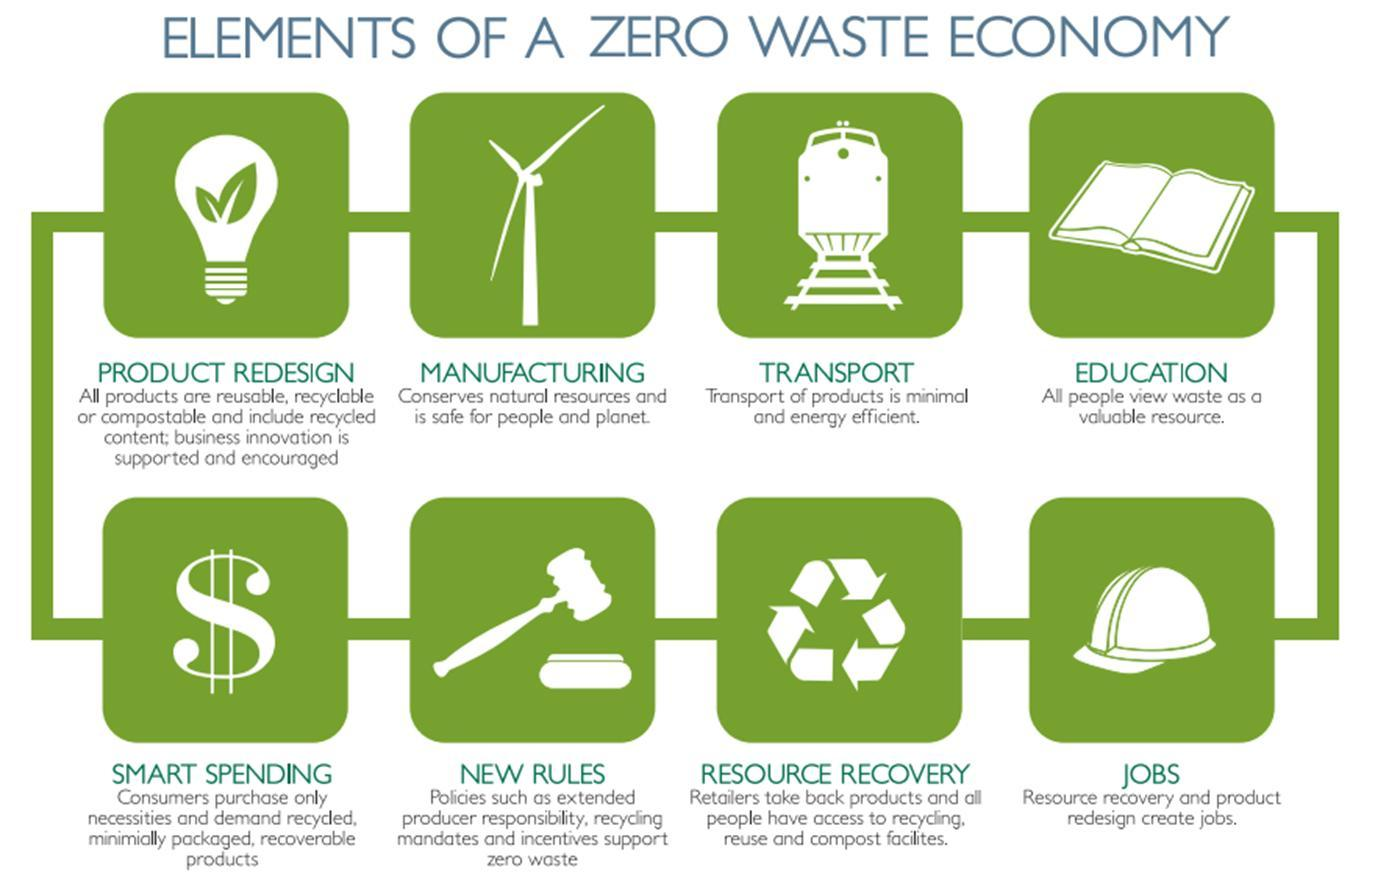 Public attitudes towards recycling and waste